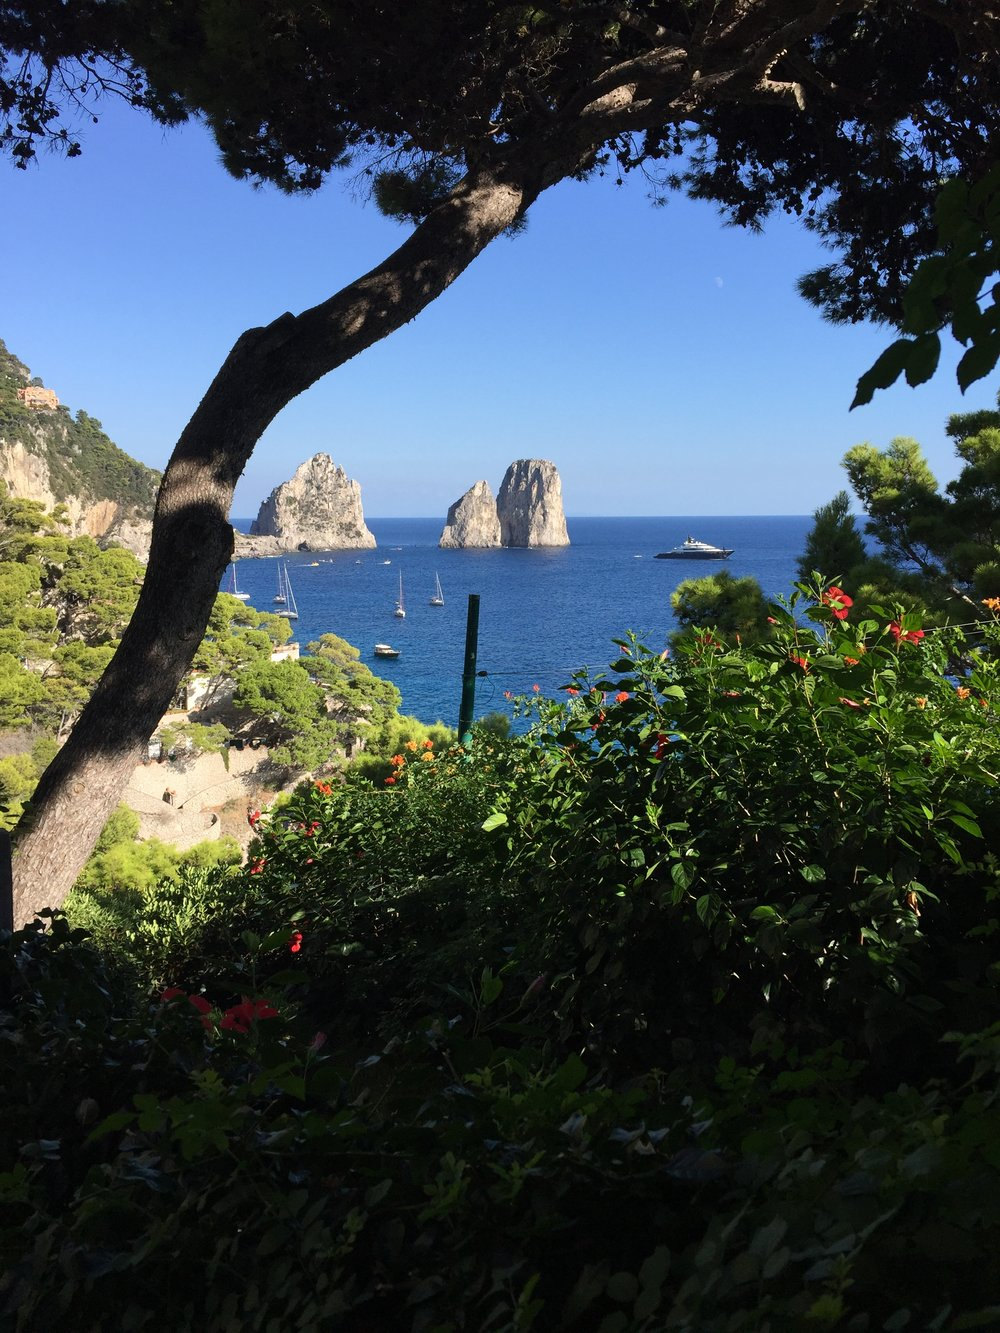 The views from Capri are beyond compare. These are the famous faraglioni (rock formations eroded by waves) off the coast of the island.